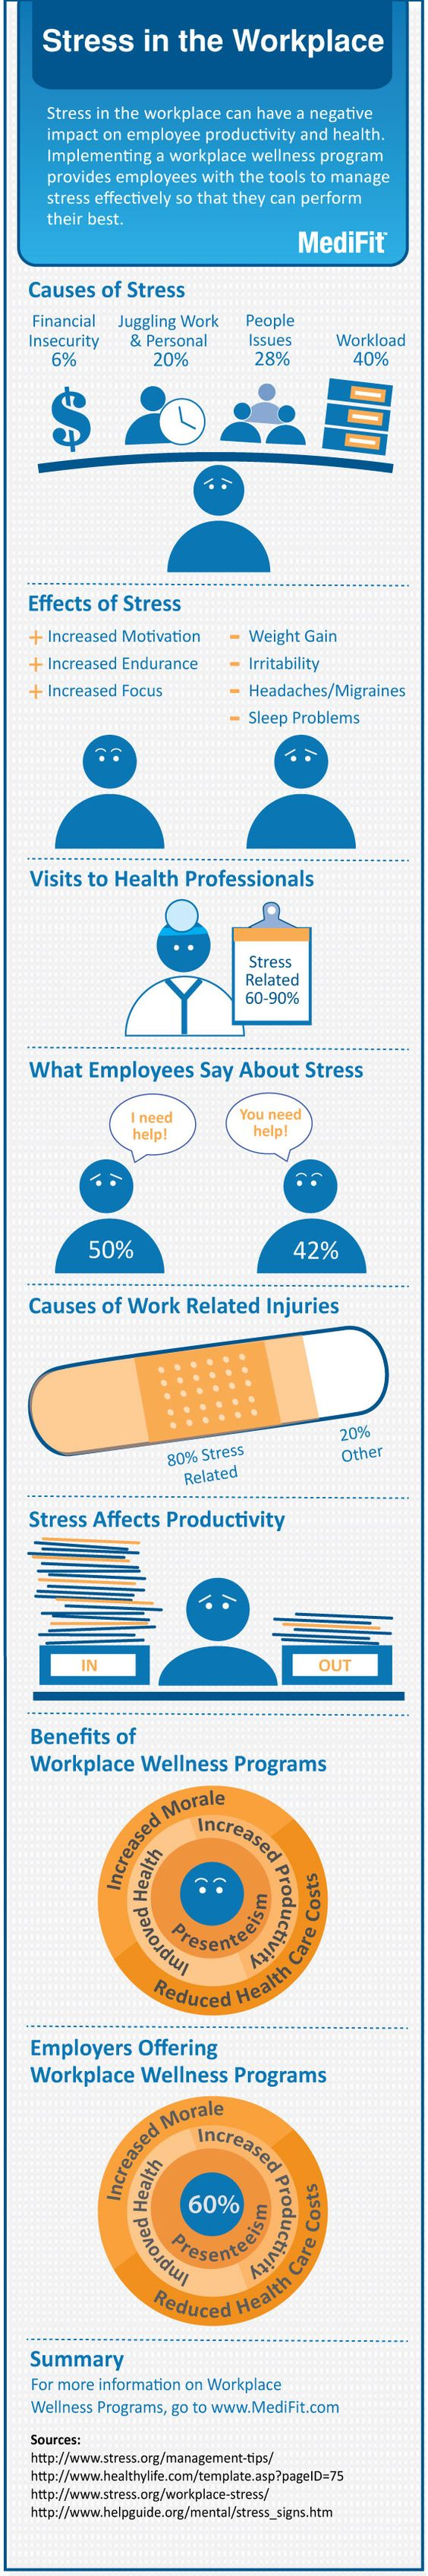 Implementation of a workplace stress management